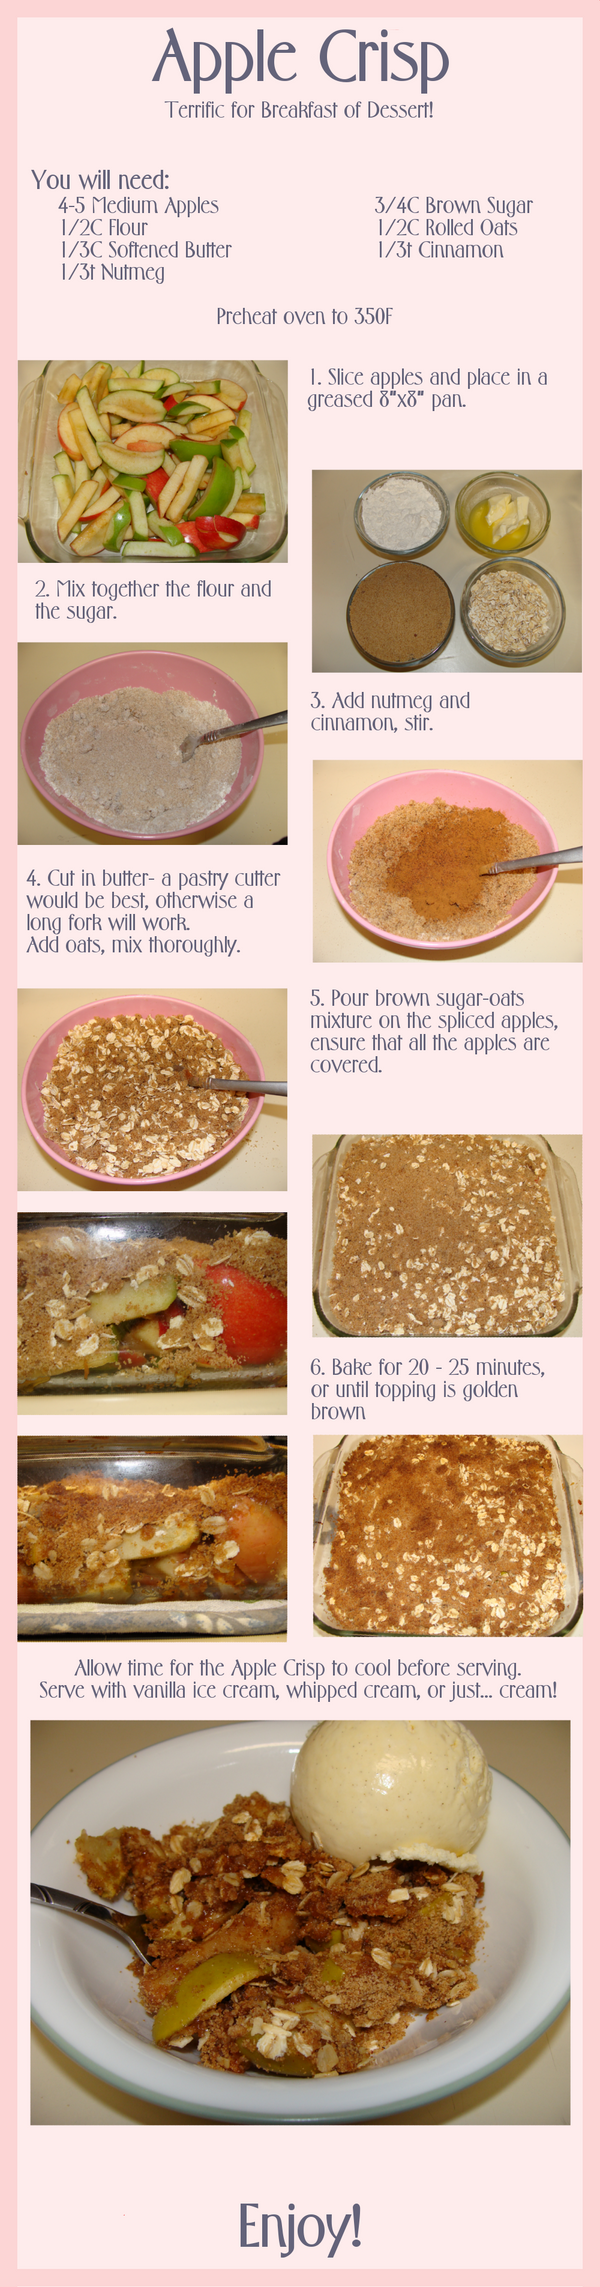 Apple Crisp by ElwynAvalon